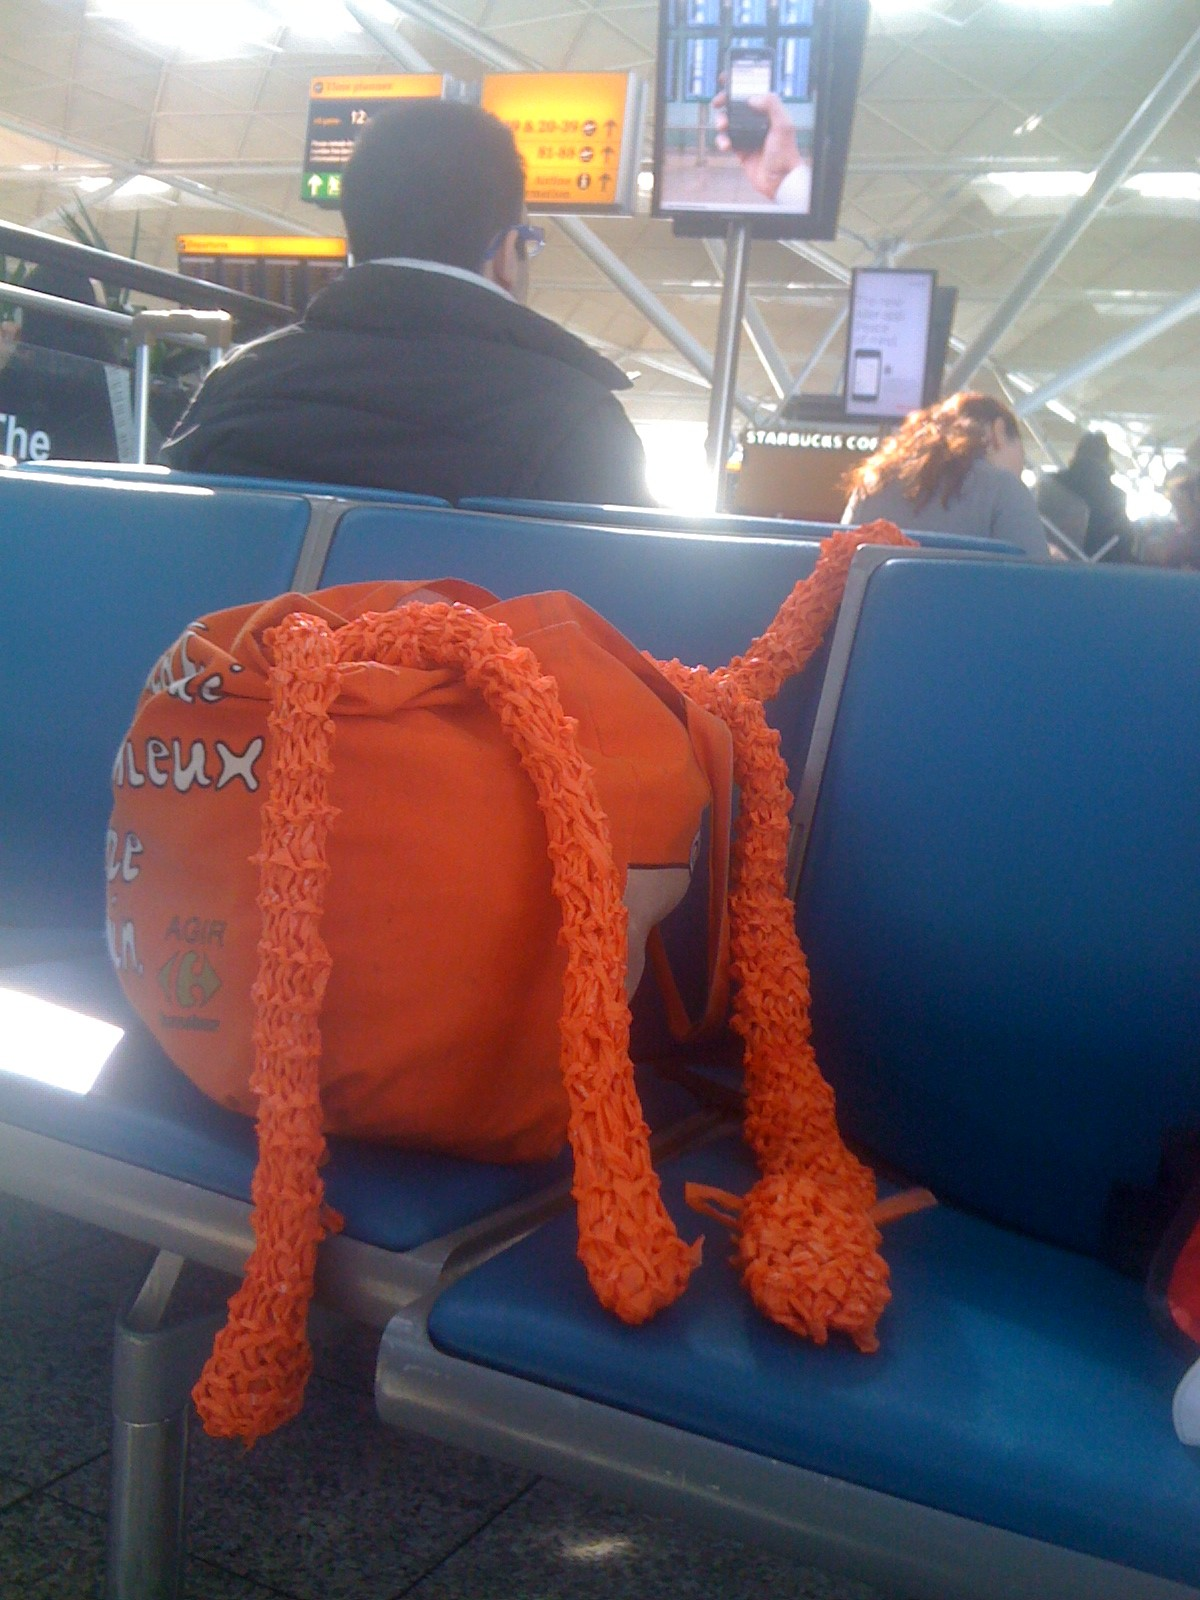 Have giant knitted squid, will travel.